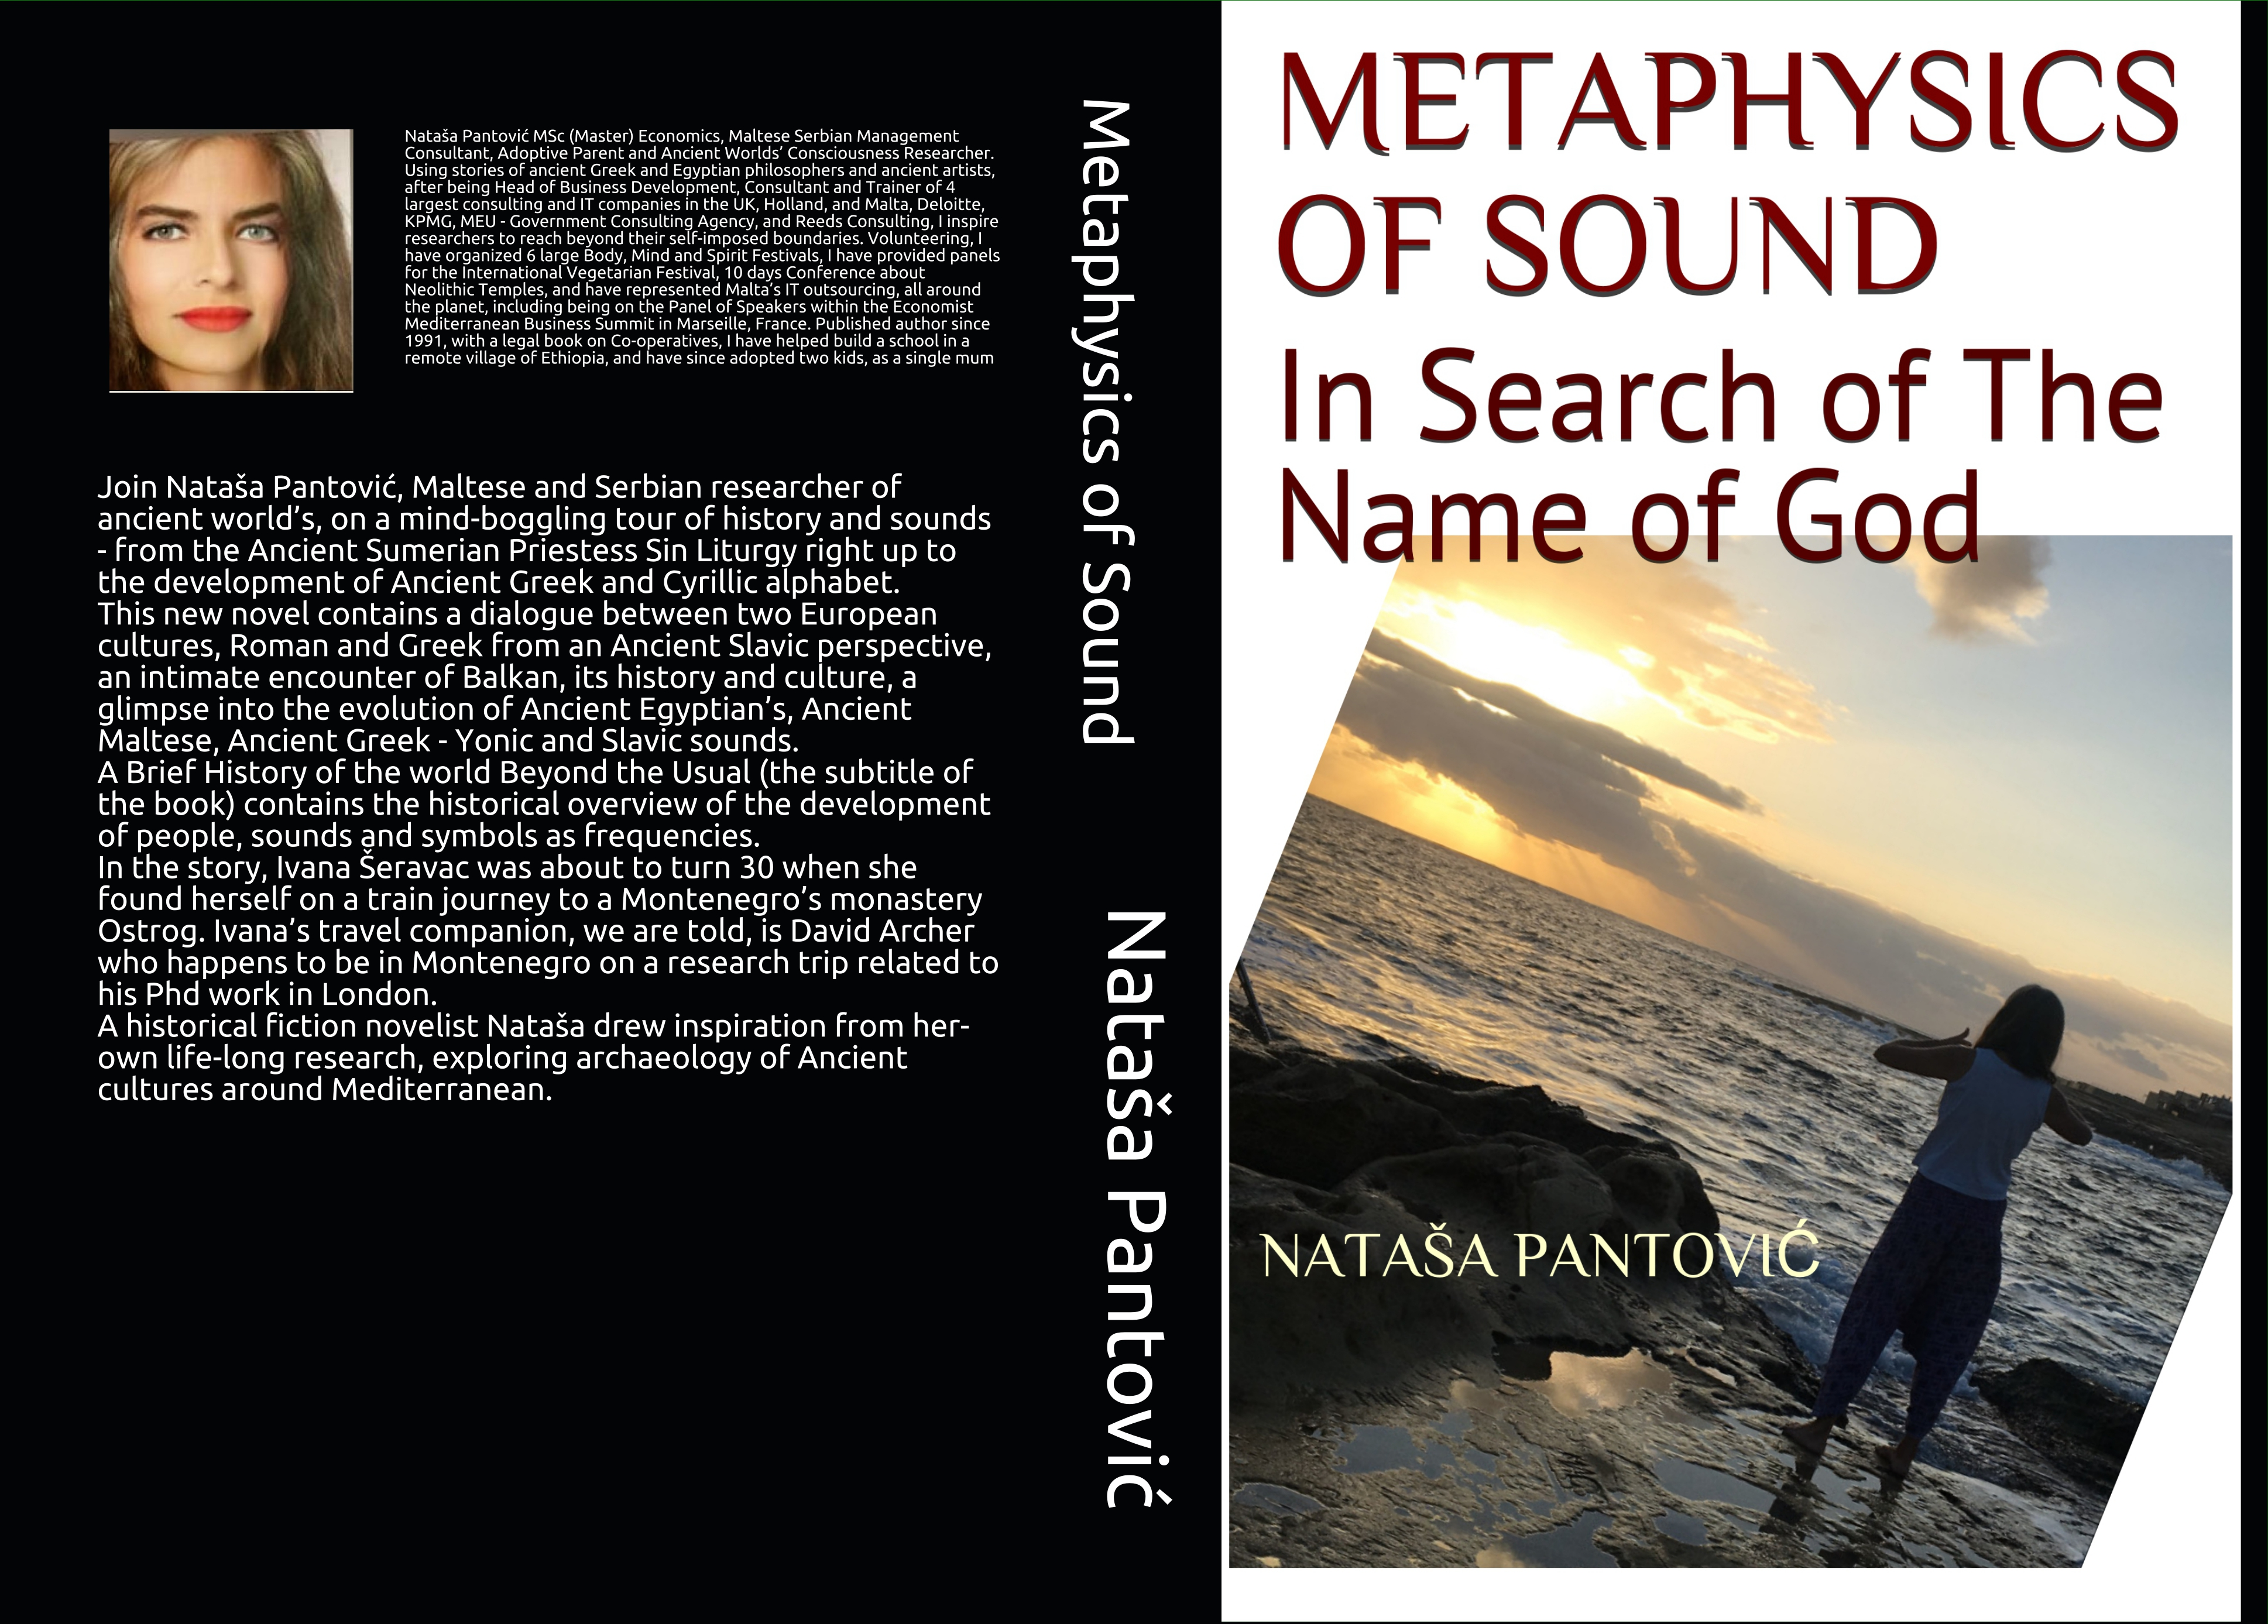 Metaphysics of Sound In Search of the Name of God or a Brief History of the World beyond the Usual by Nataša Pantović book cover